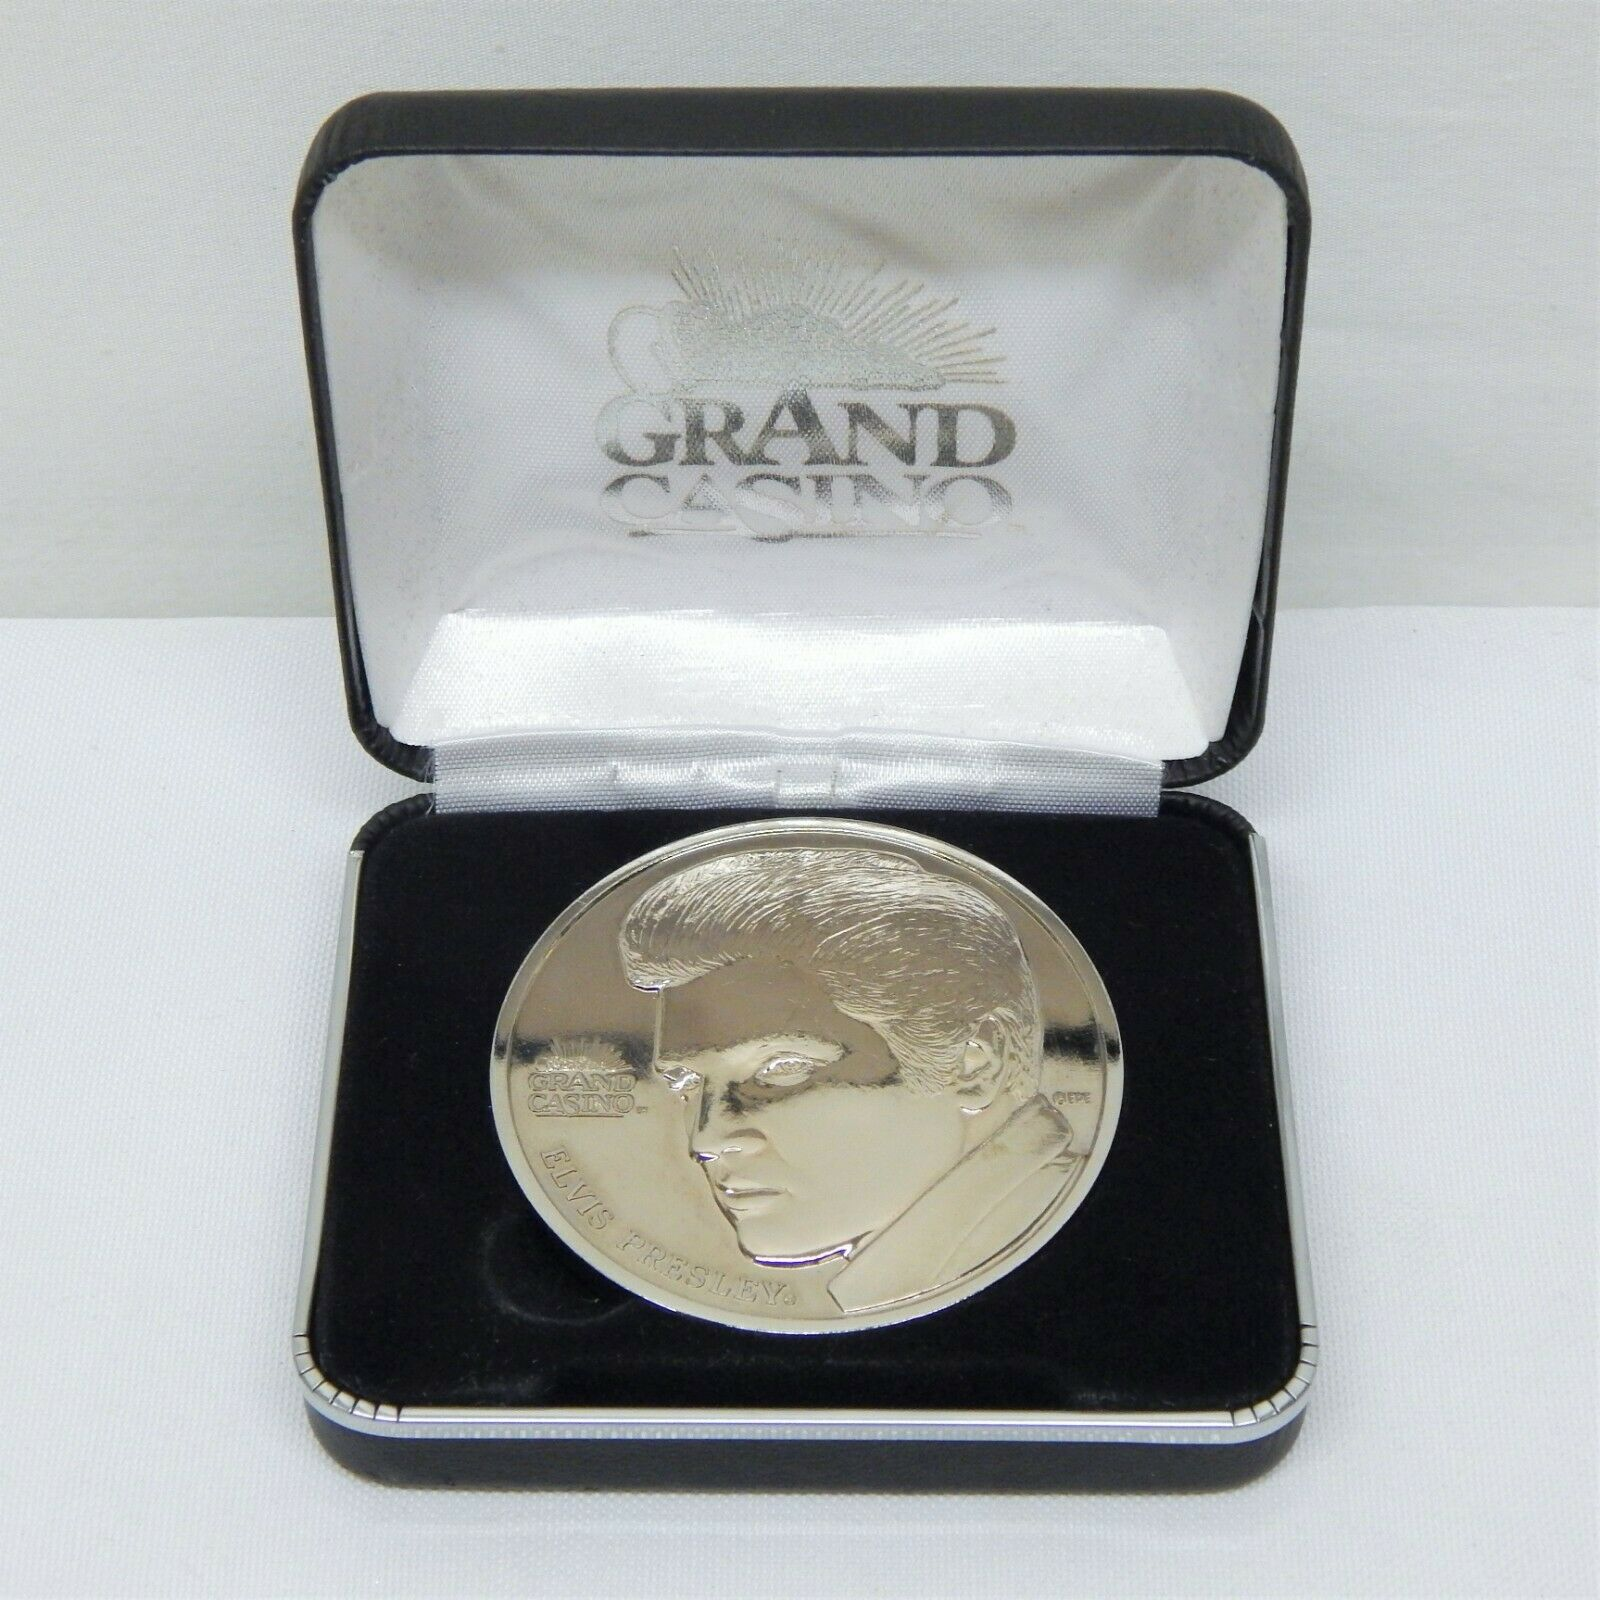 GRAND CASINO REMEMBERS ELVIS PRESLEY COLLECTIBLE COIN WITH ORIGINAL GIFT BOX - $10.00